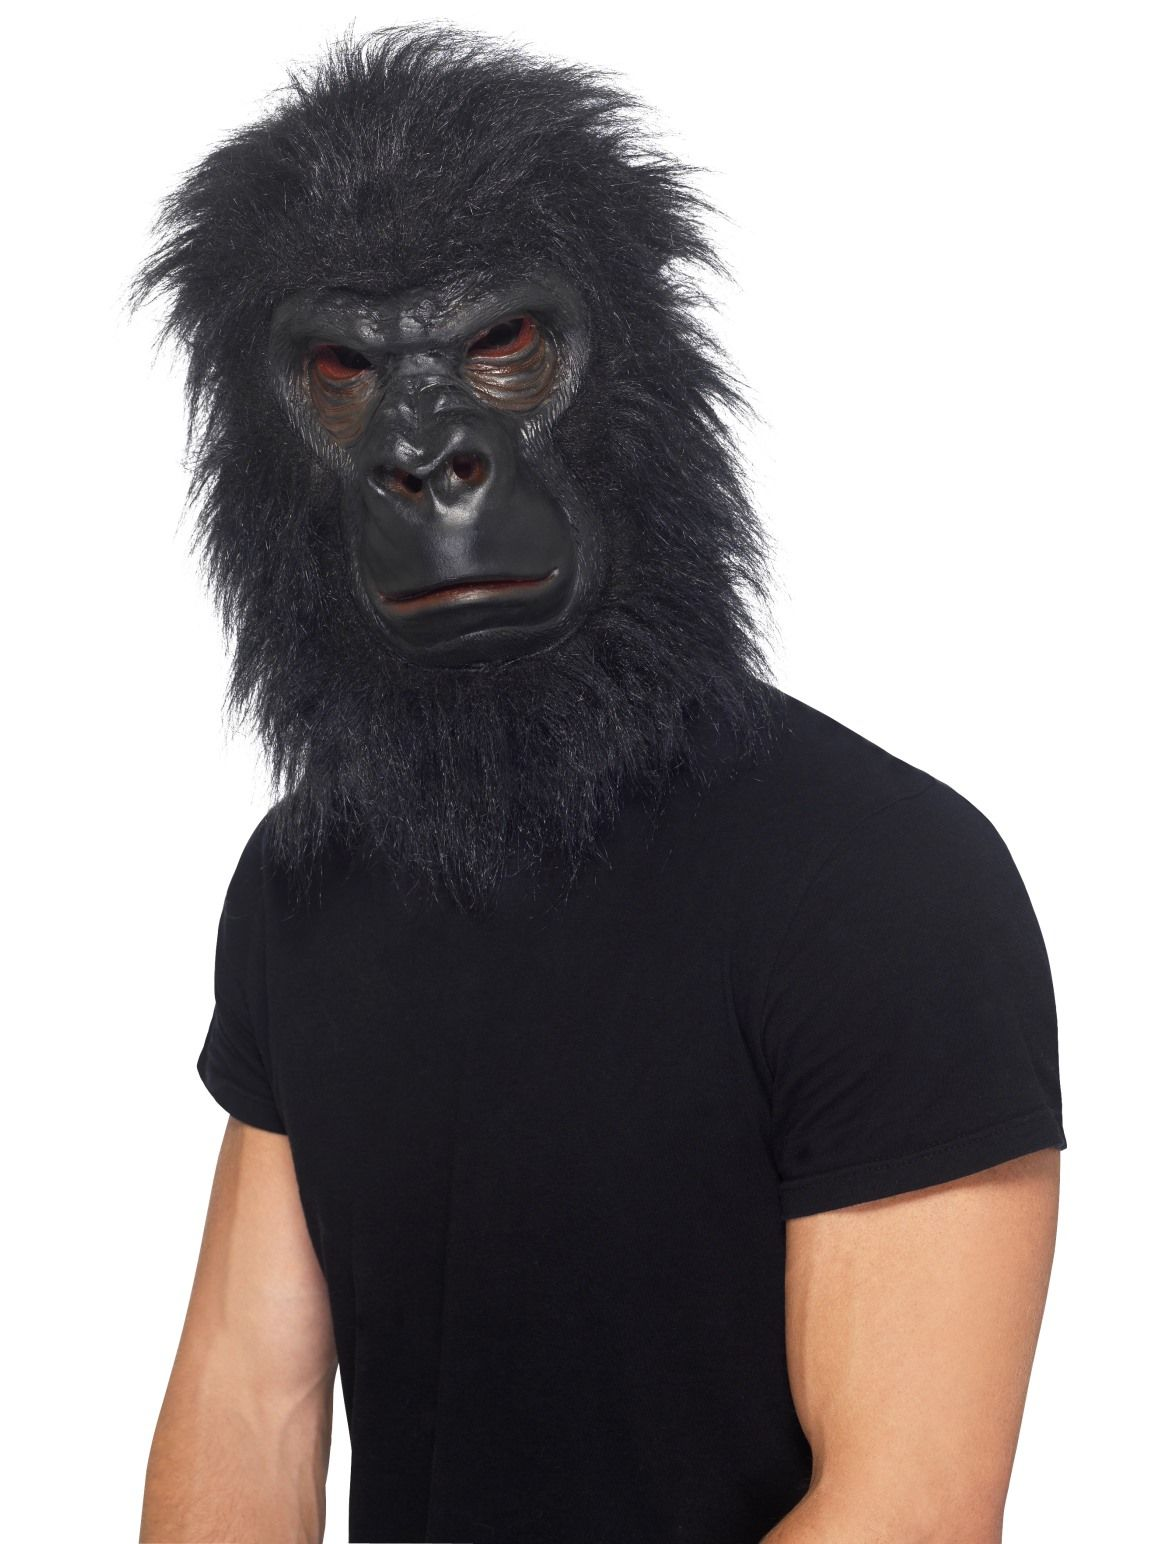 Gorilla Ape Mask Foam Latex with Black Hair Costume Accessory Halloween